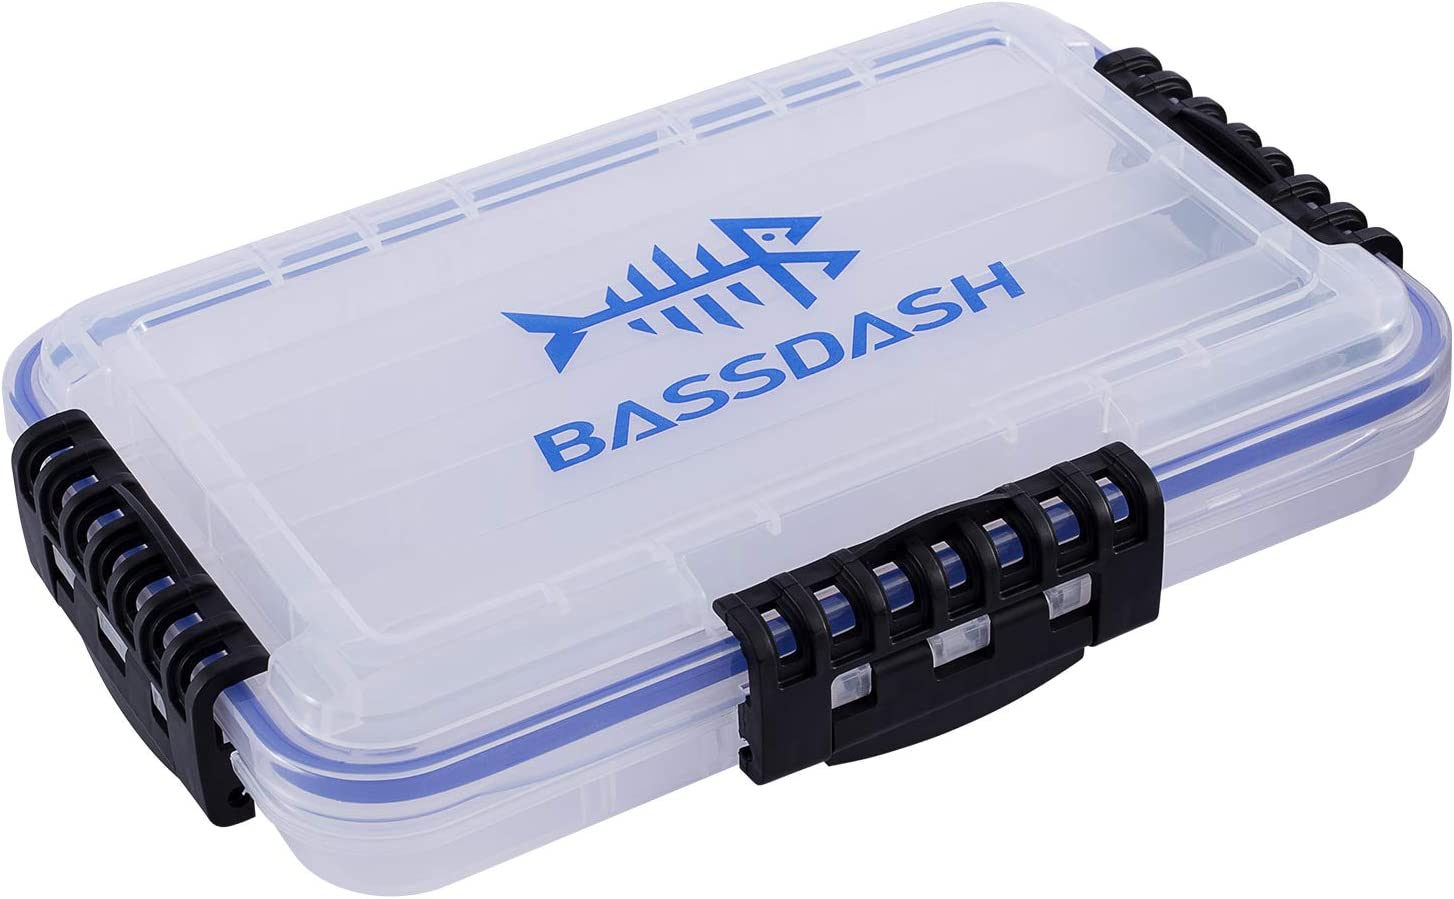 Bassdash 3600 3670 3700 Tackle Storage Waterproof Utility Tackle Boxes Fishing Lure Tray with Adjustable dividers